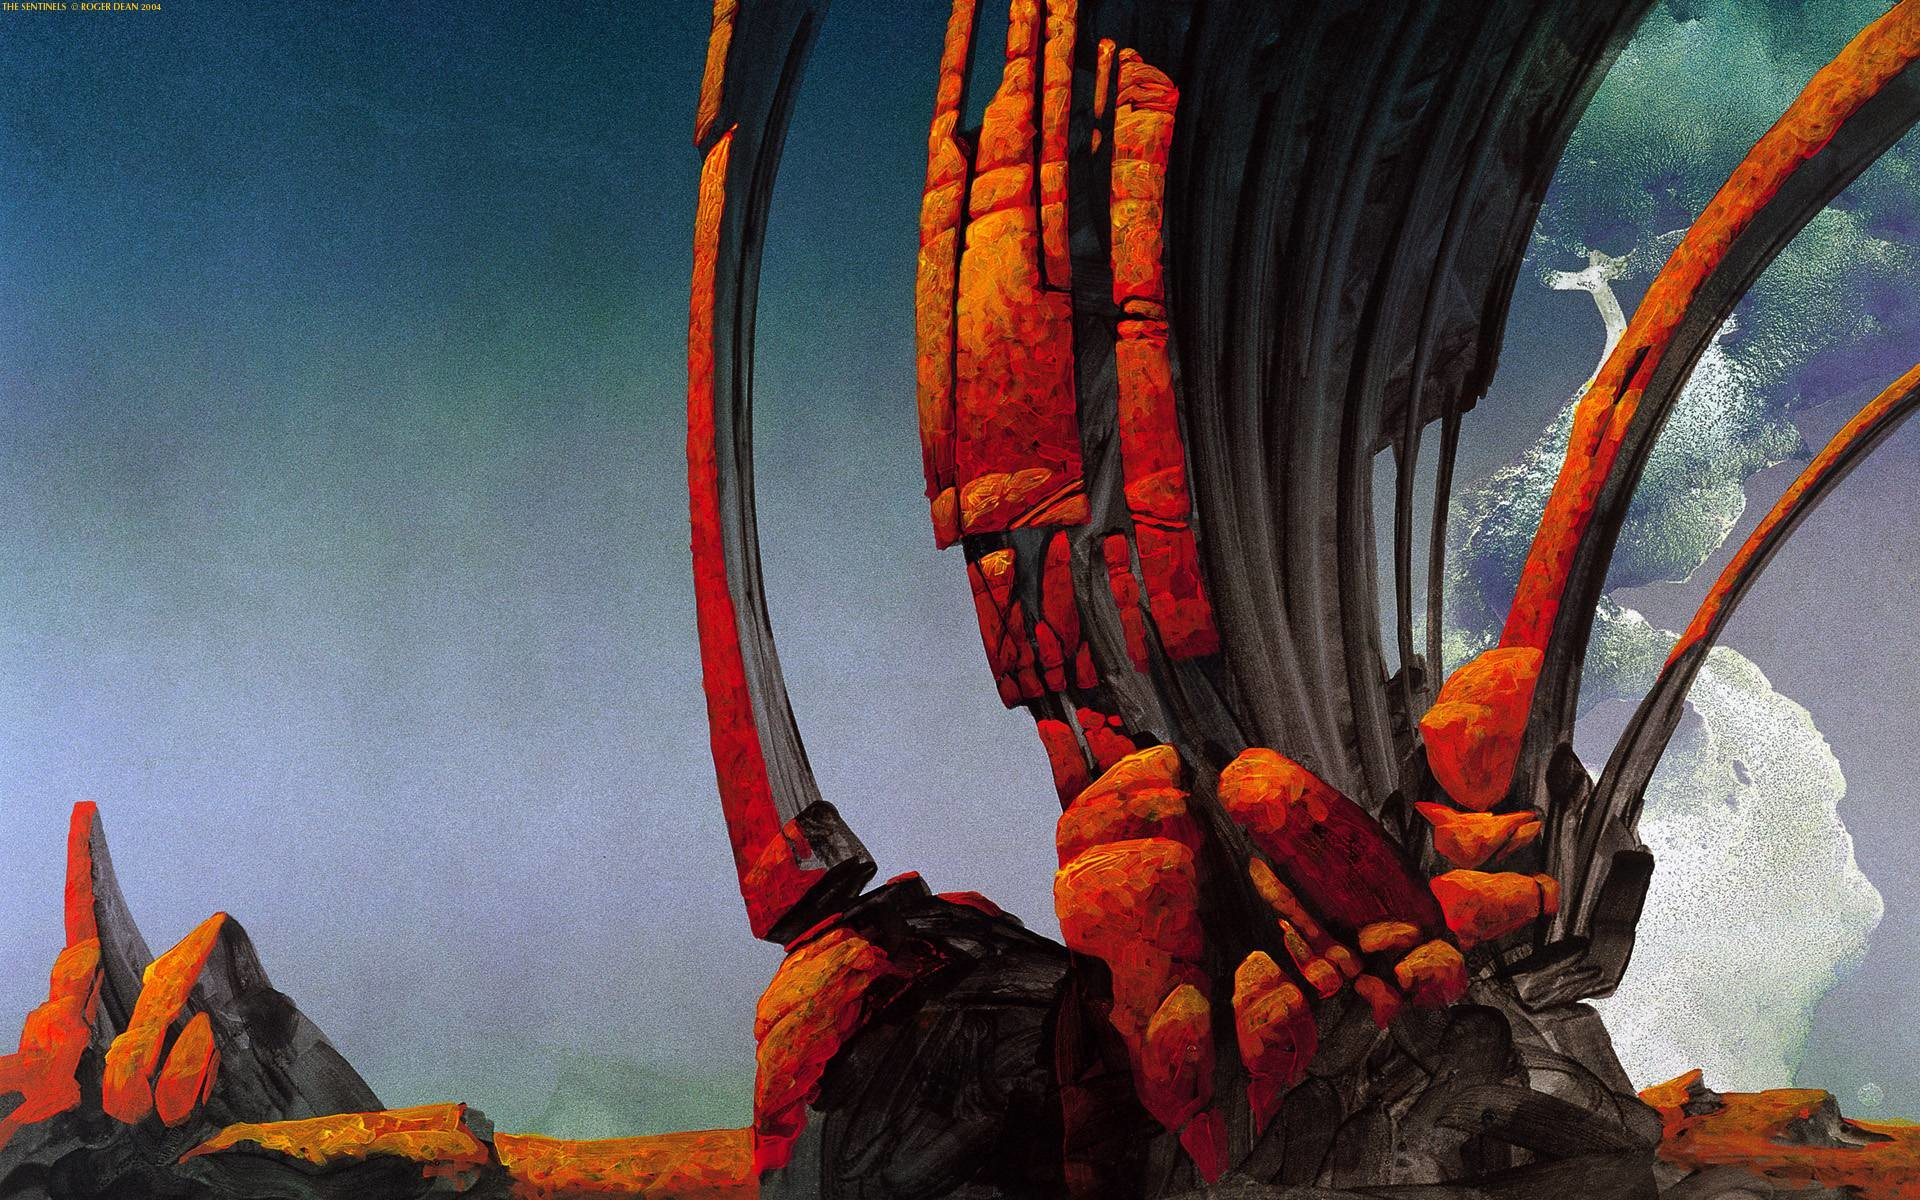 1920x1200 Roger Dean Wallpaper For Android #91825 - The HD Wallpaper